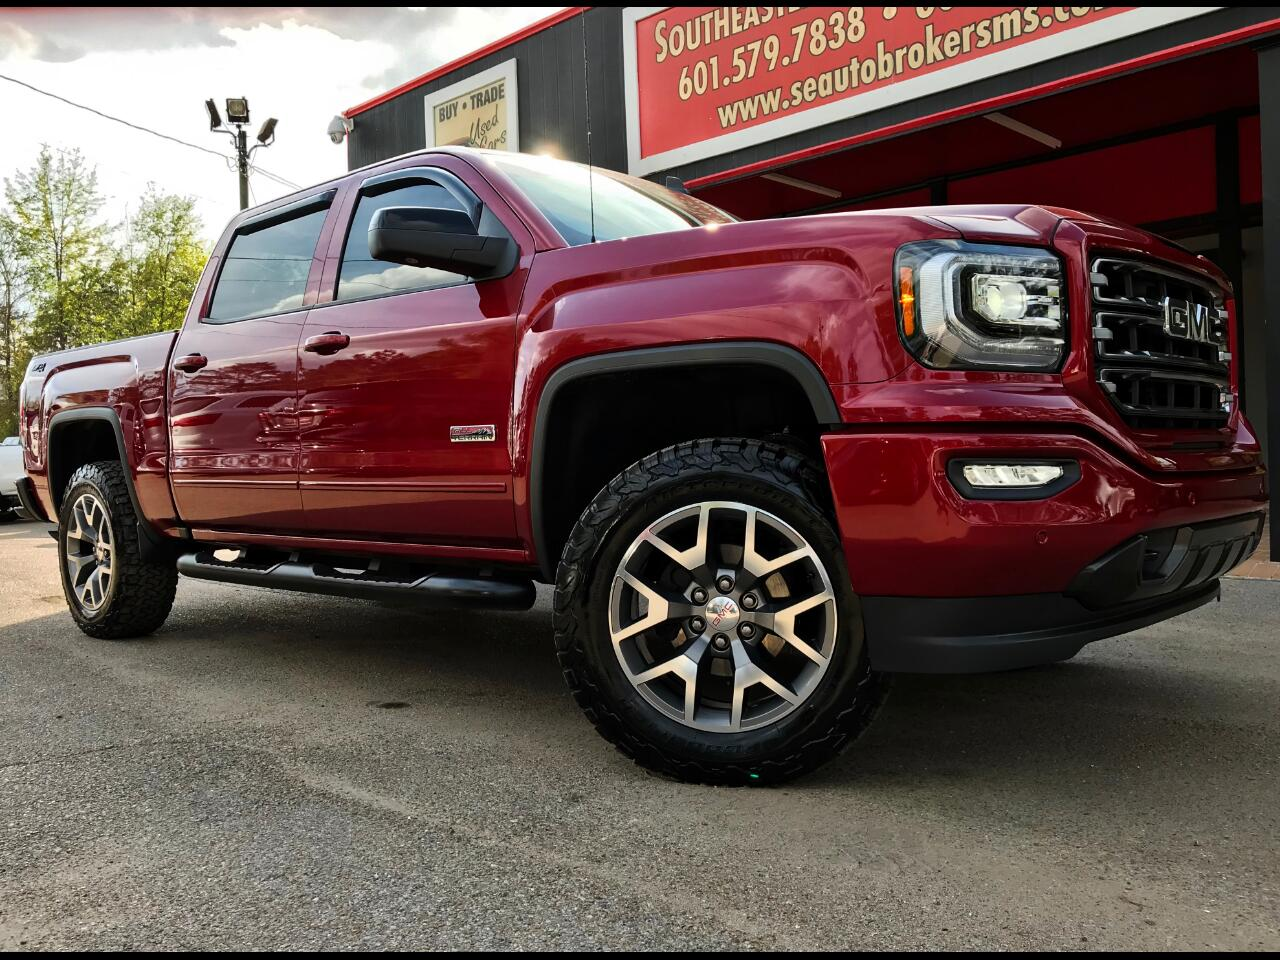 2018 GMC Sierra 1500 SLT ALL TERRAIN CREW CAB SHORT BED 4WD LEVELED